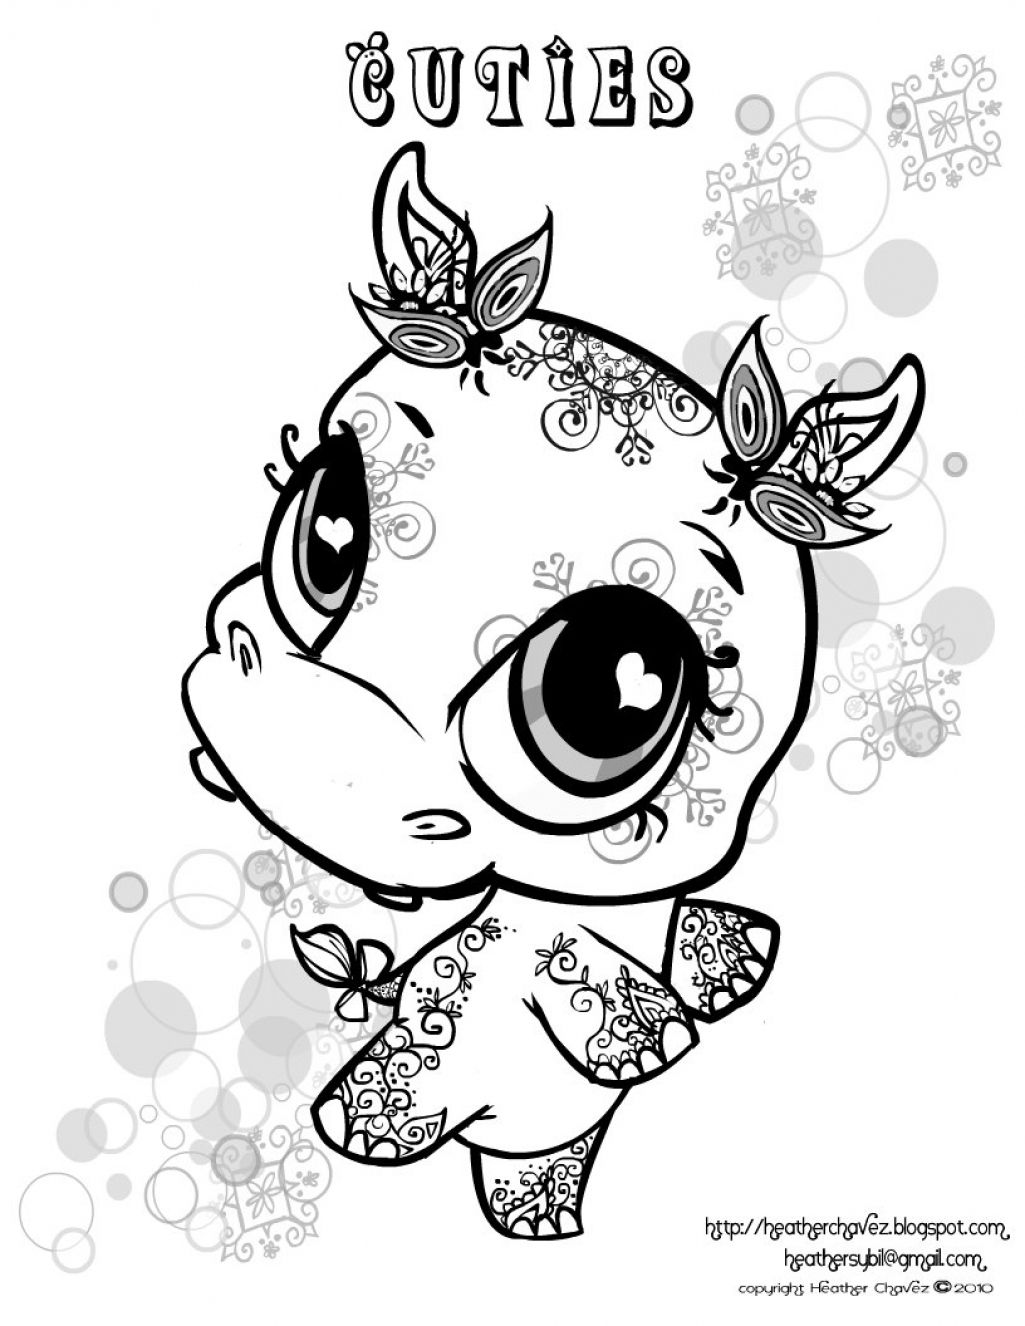 Lps Christmas Coloring Pages Littlest Pet Shop Coloring Pages Lps Lps Christmas Coloring Pages Elephant Coloring Page Animal Coloring Pages Cute Coloring Pages